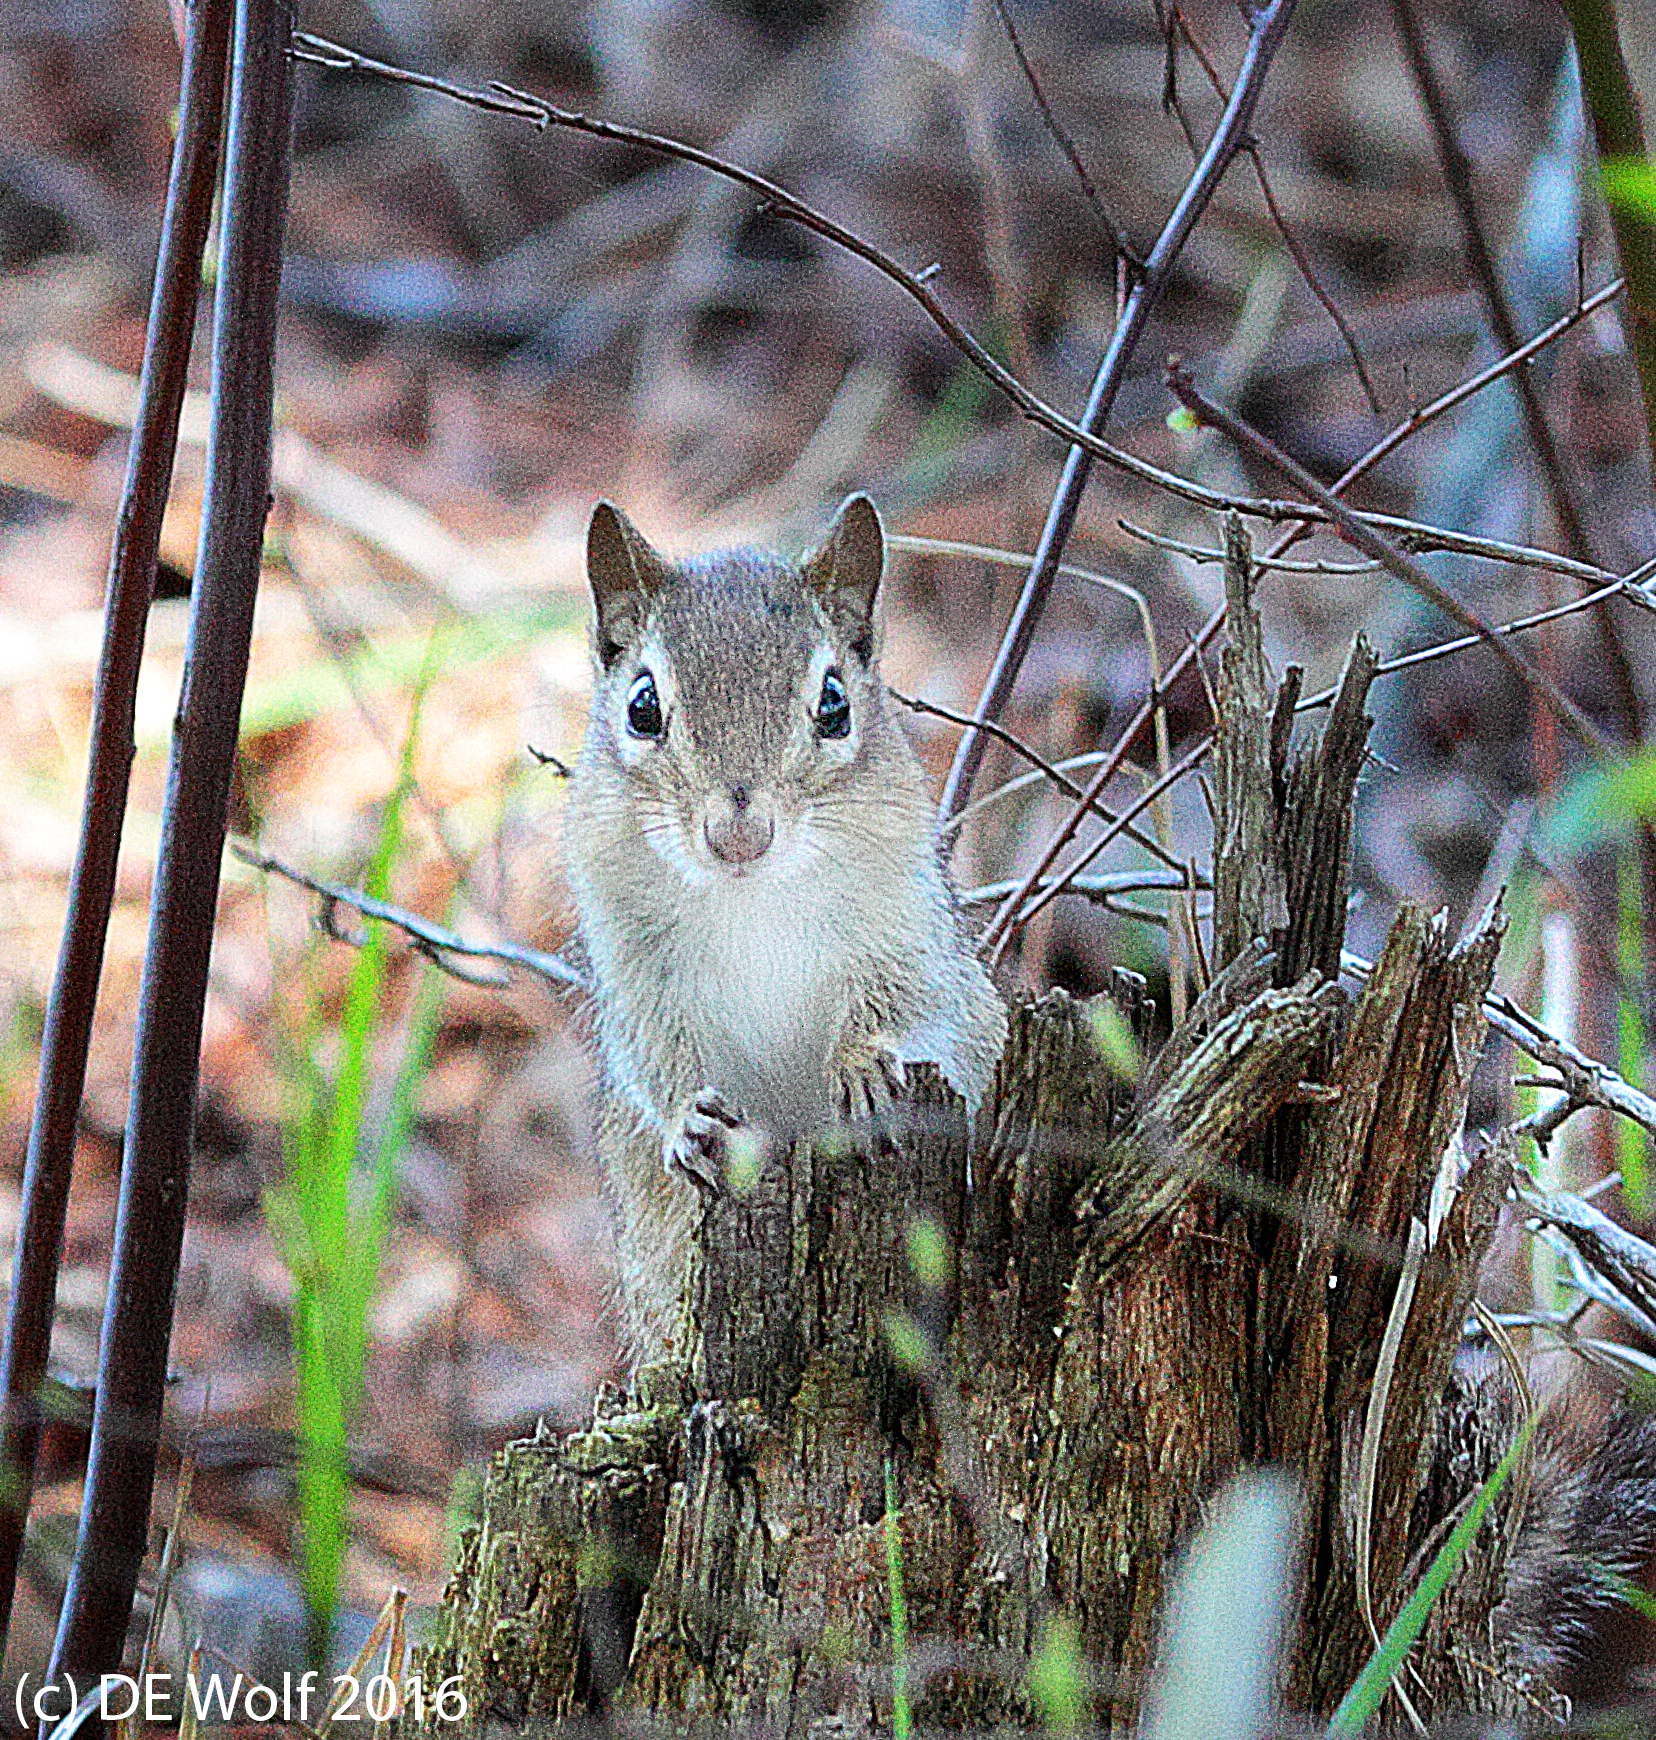 Figure 1 - Eastern chipmunk - Tamias striatus, Assabet River Wildlife Refuge, Maynard, MA, April 18, 2016. (c) DE Wolf 2016.